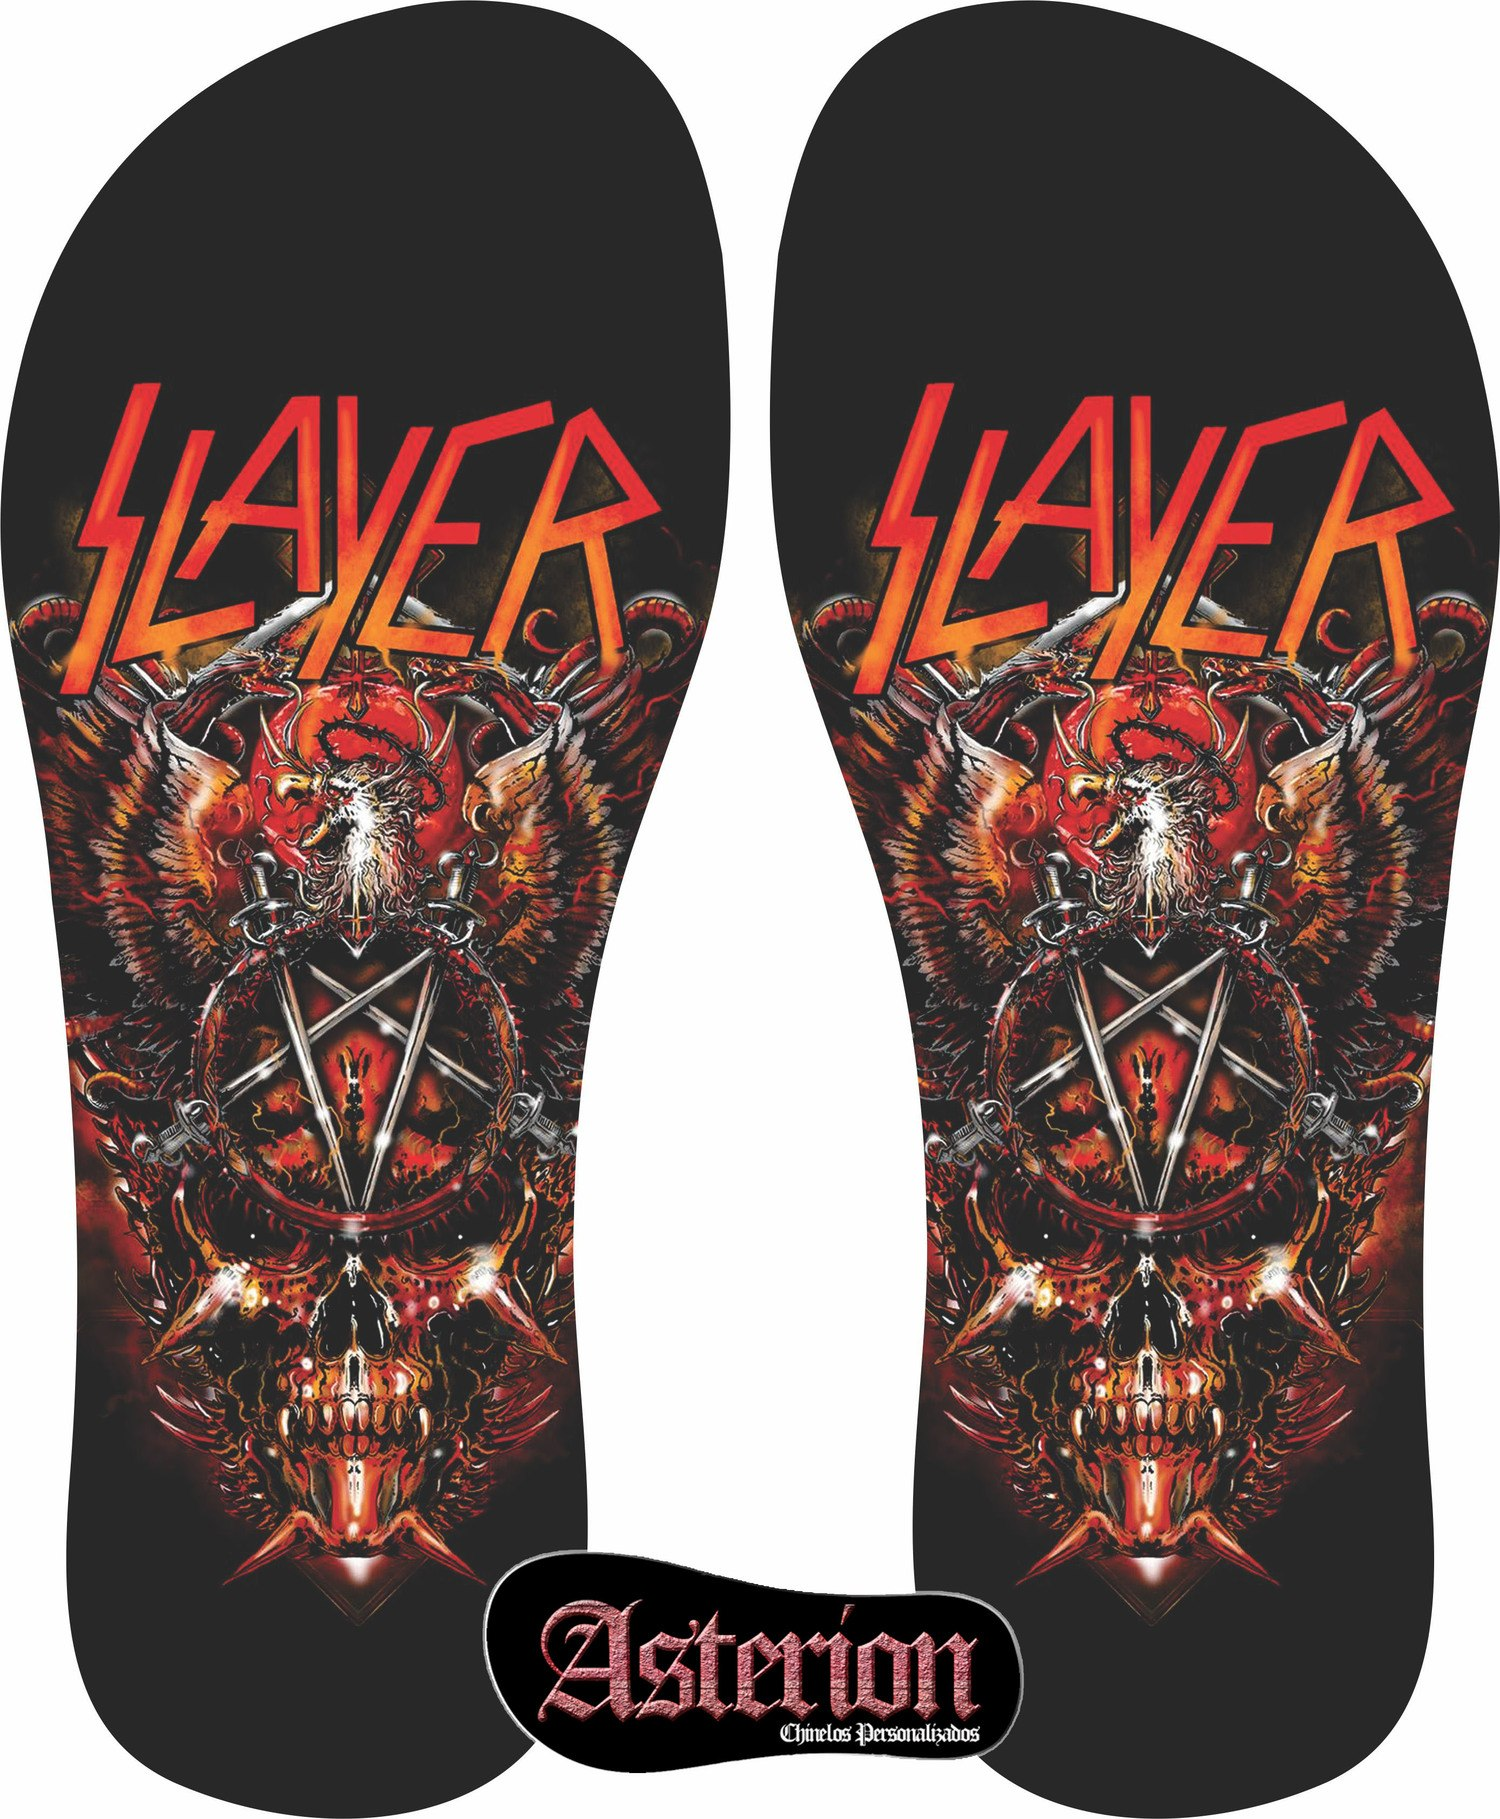 Chinelo Slayer – Asterion Chinelos Personalizados